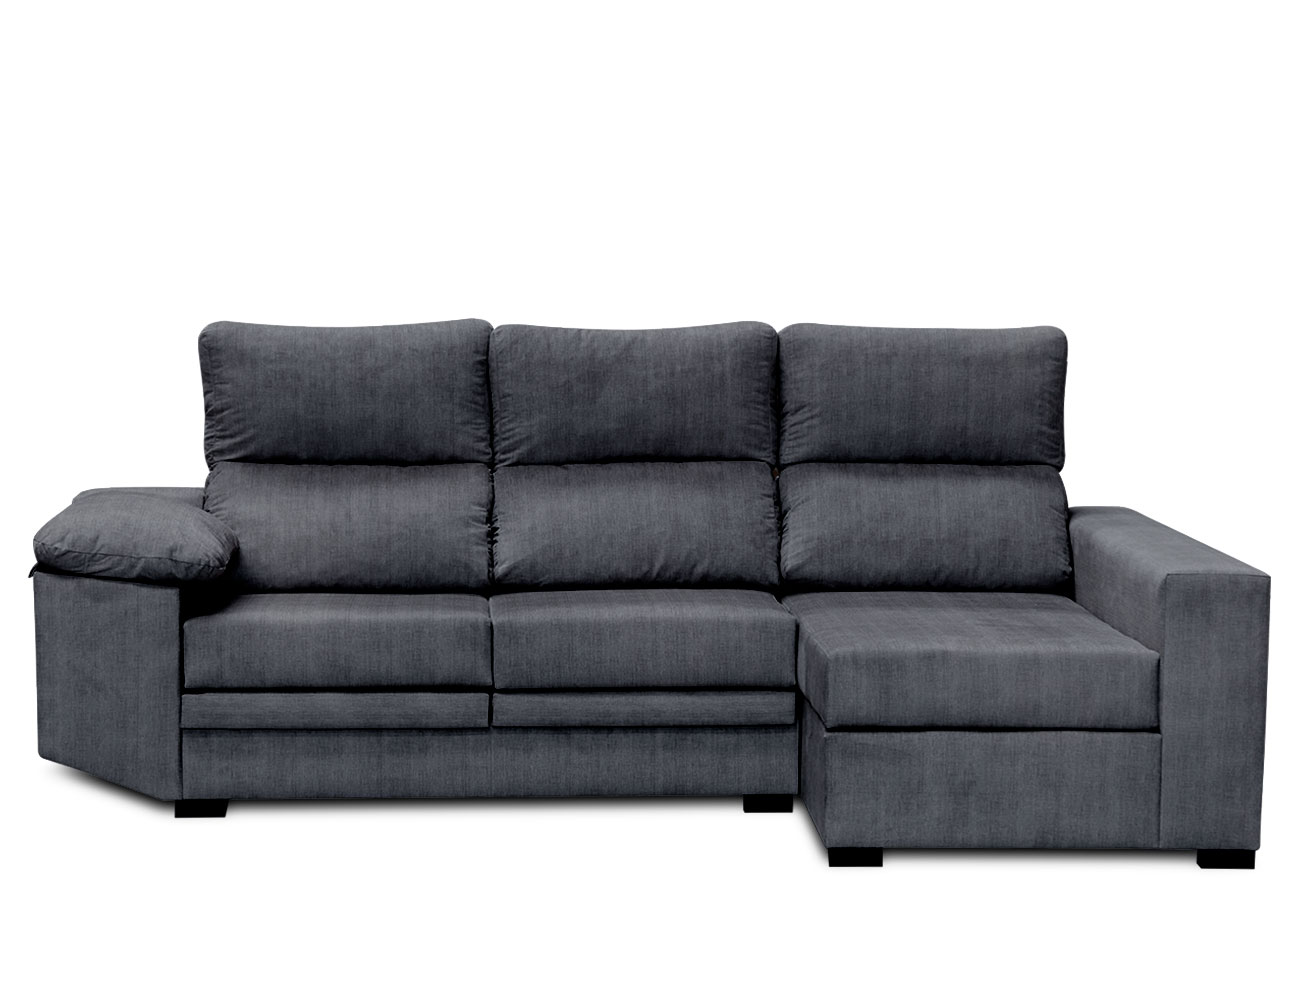 Sofa chaiselongue moderno ceniza 1